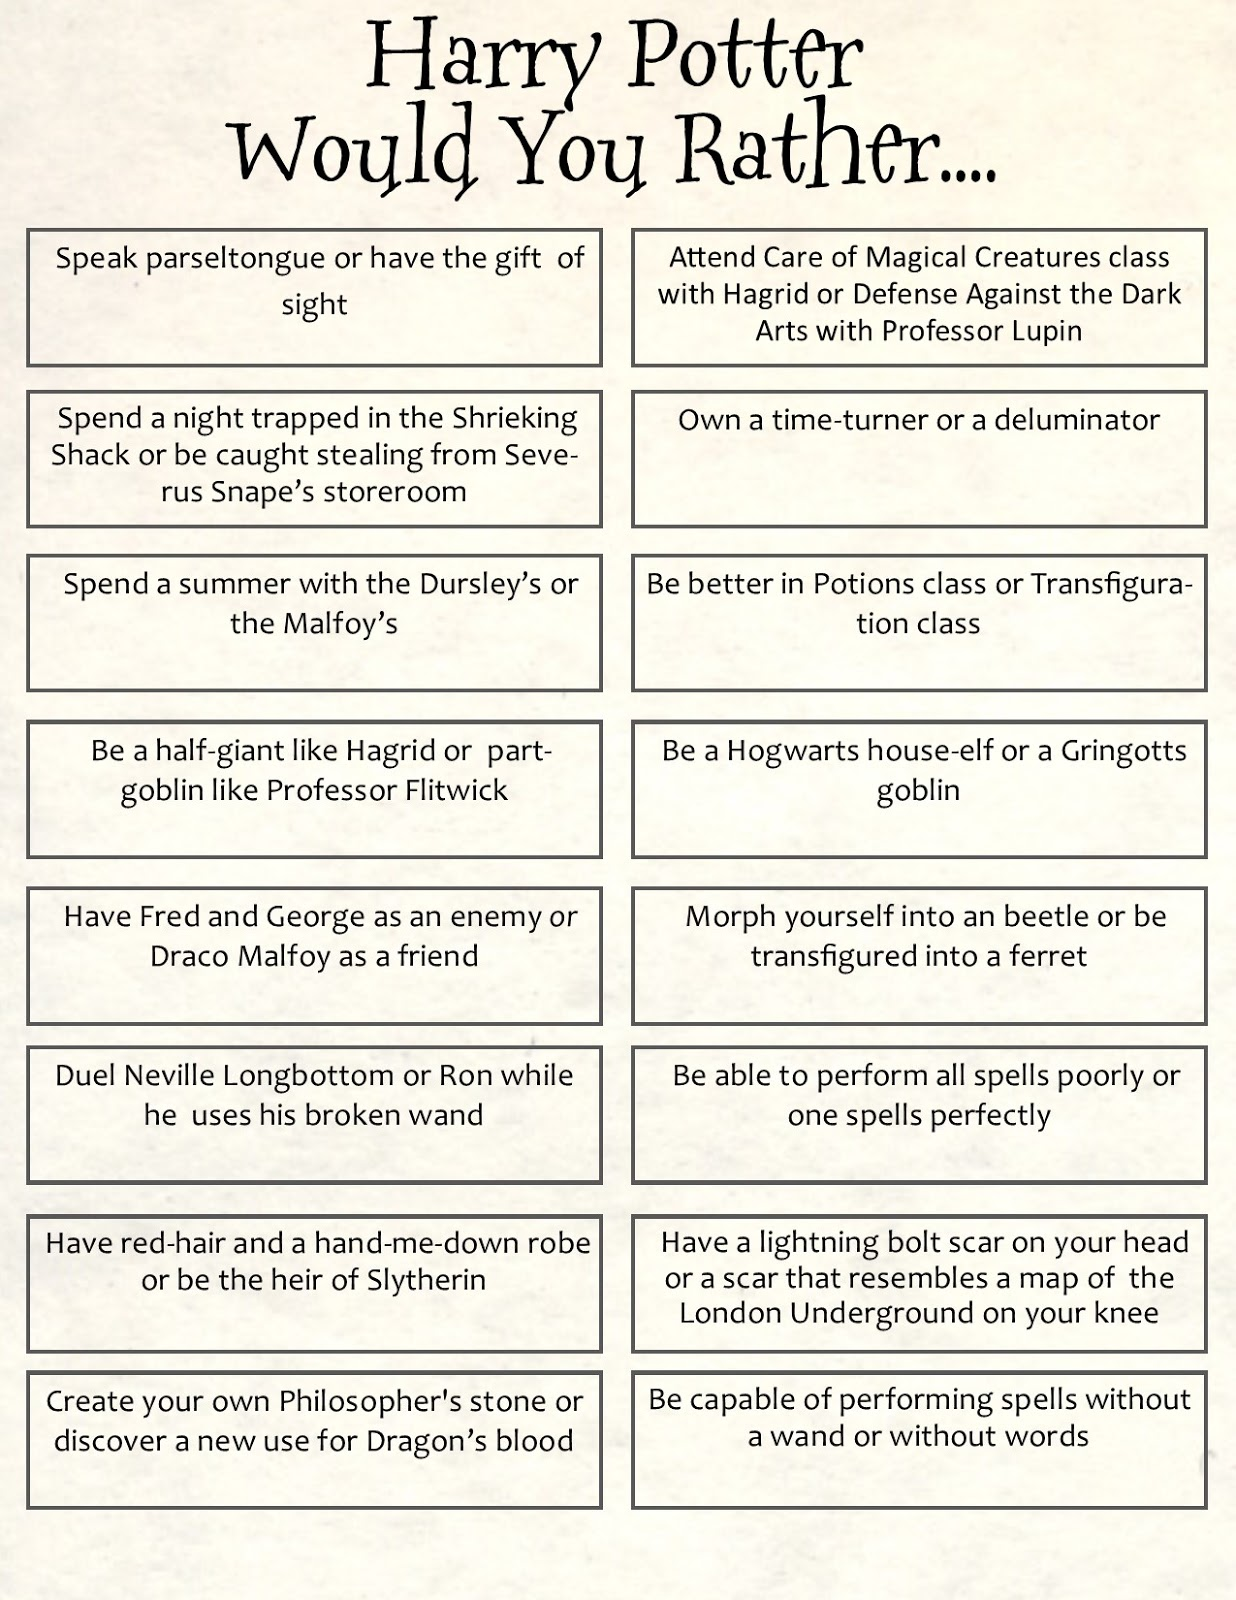 Harry Potter Spells Pdf